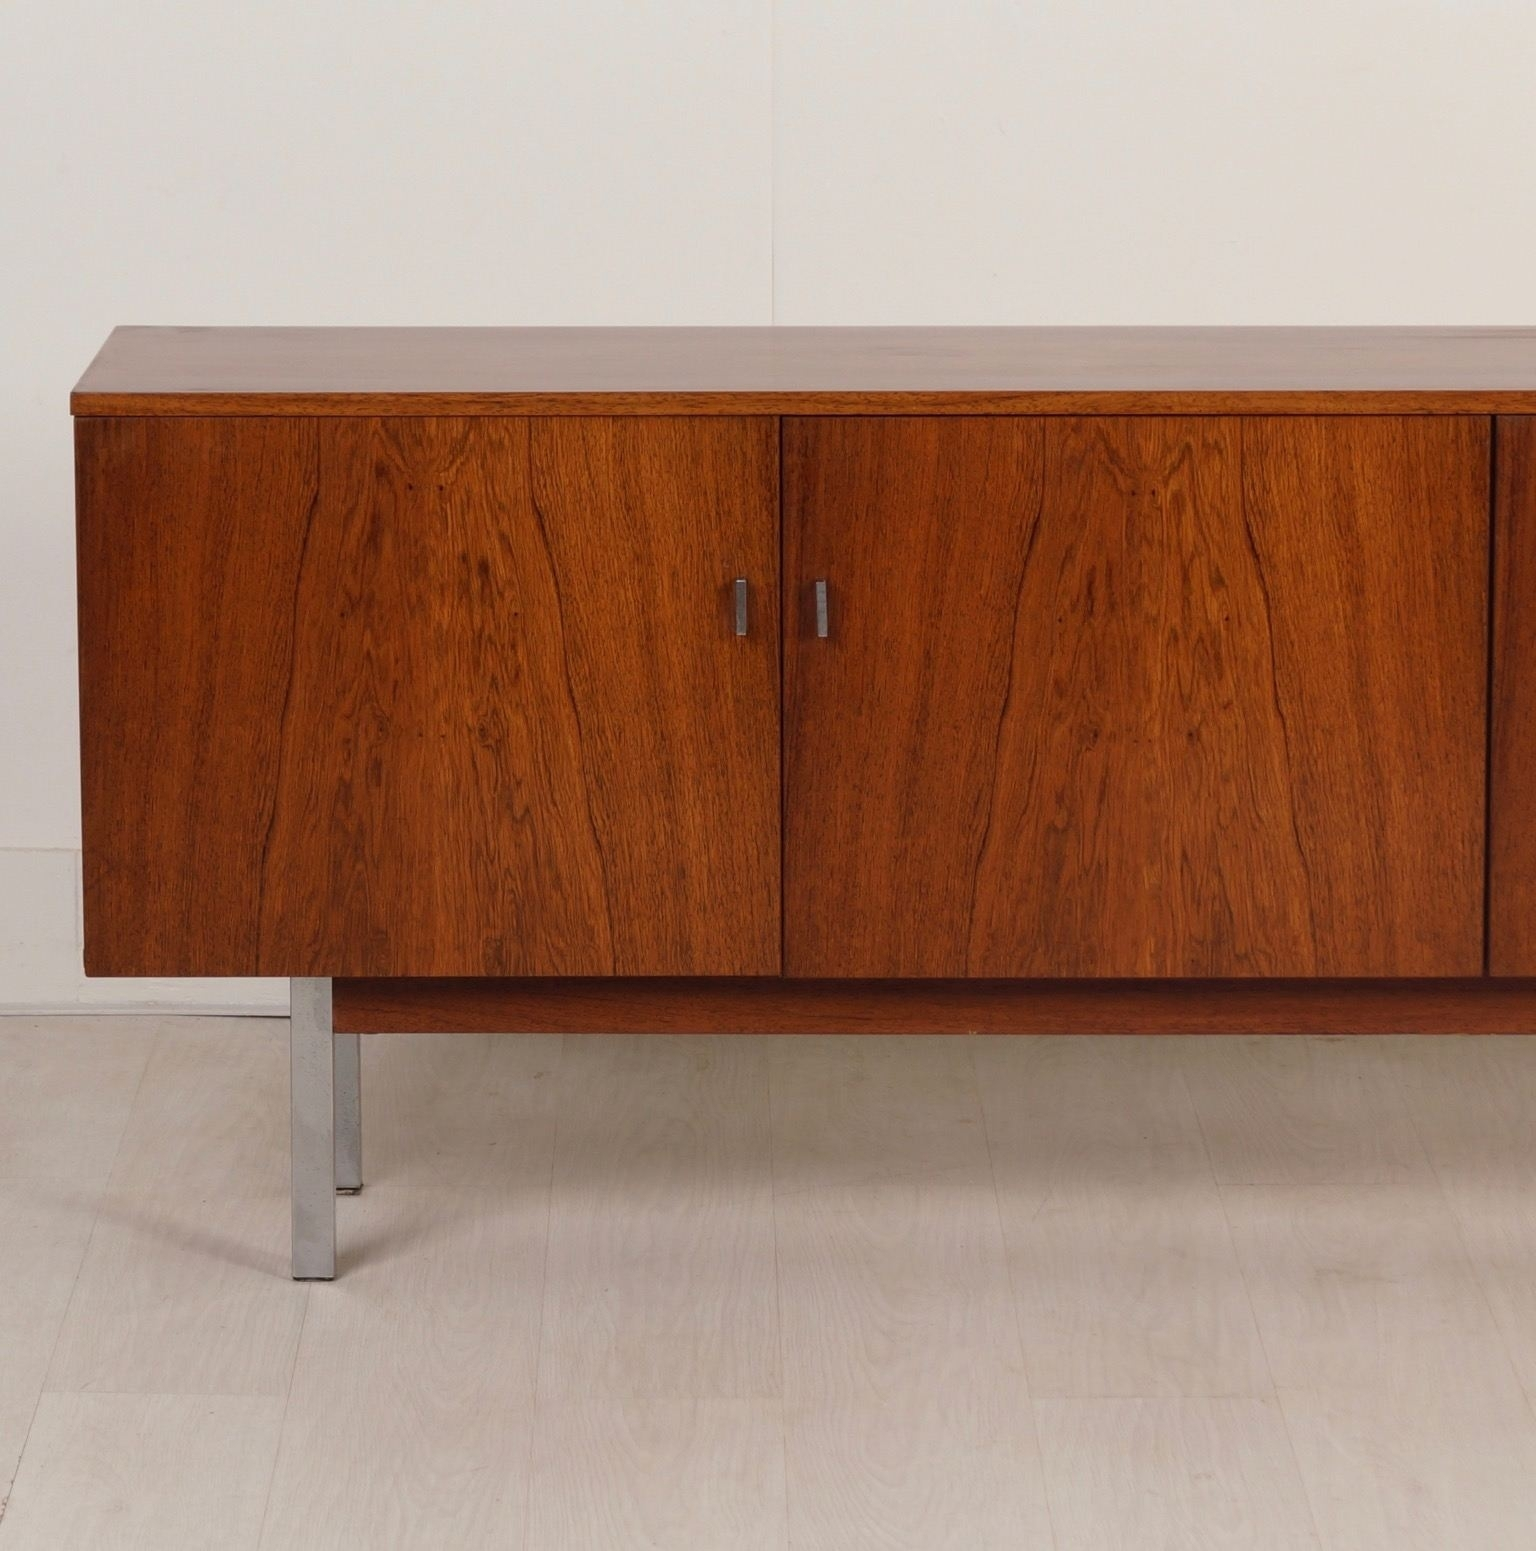 Vintage Sideboard Made Of Rosewood, 1960S - Ztijl Design throughout Vintage Brown Textured Sideboards (Image 25 of 30)